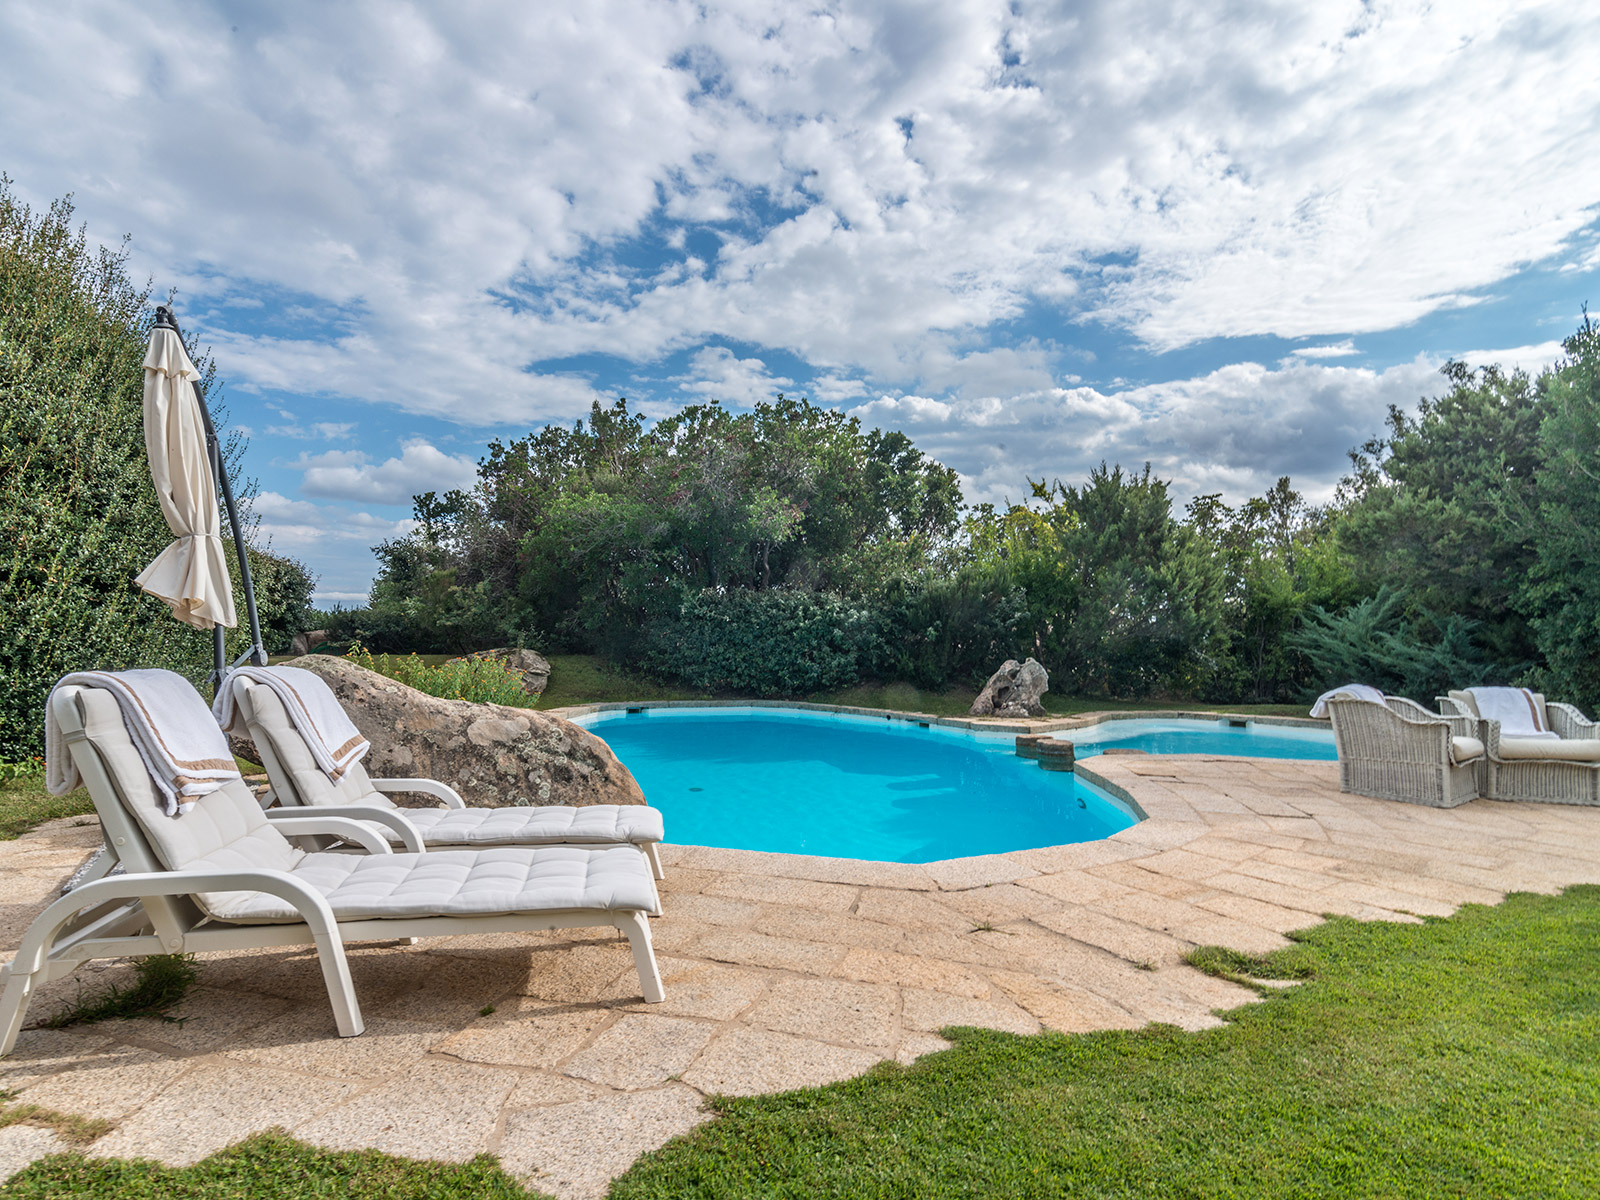 Additional photo for property listing at Magnificent sardinian style villa with private garden Via degli Stazzi Arzachena, Olbia Tempio 07021 Italia